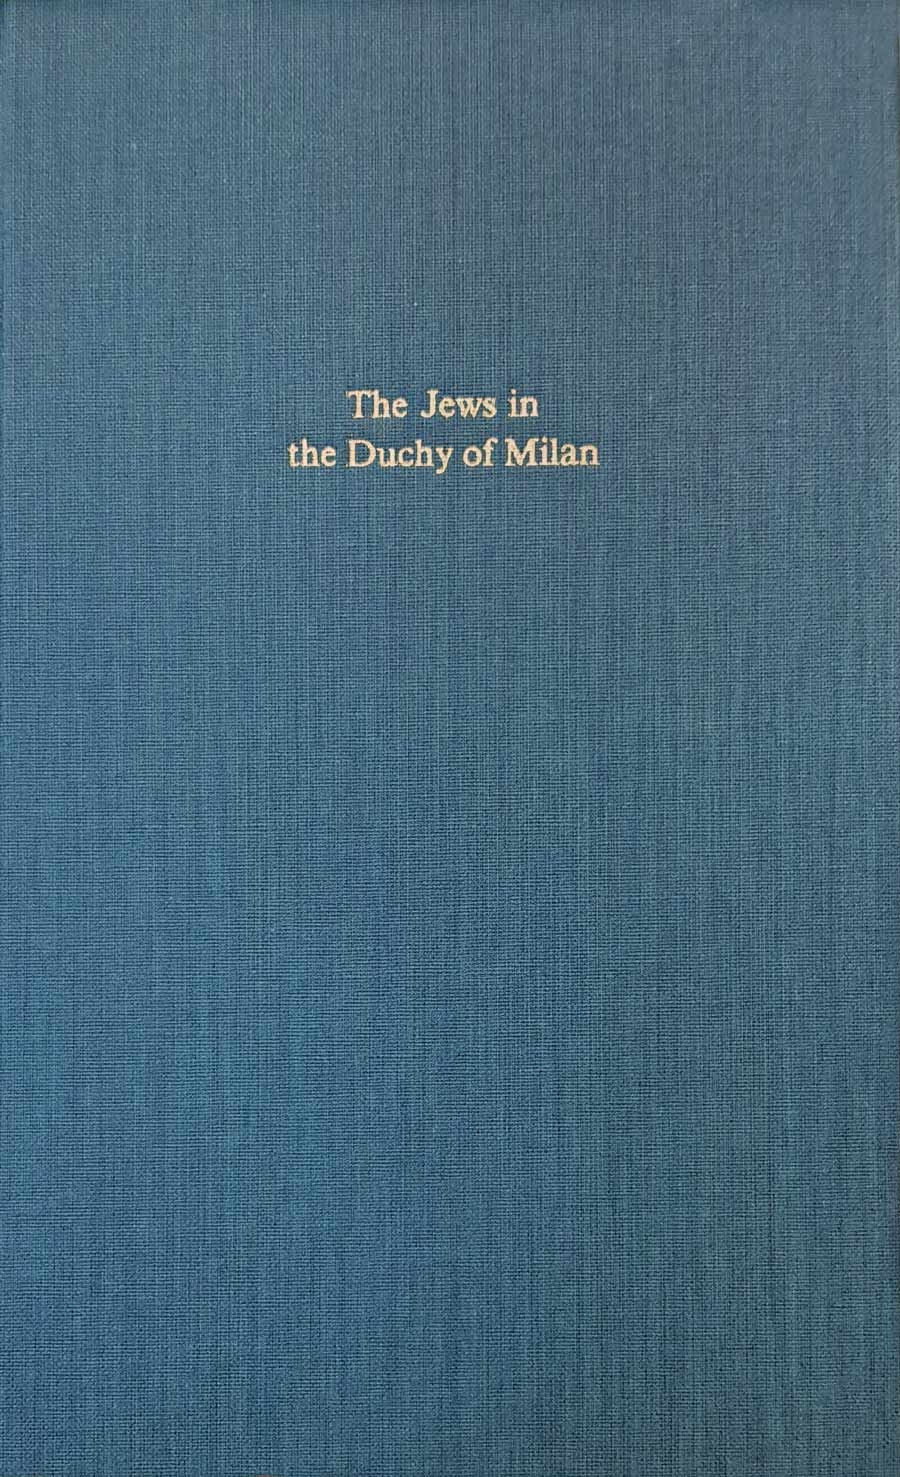 The Jews in the Duchy of Milan